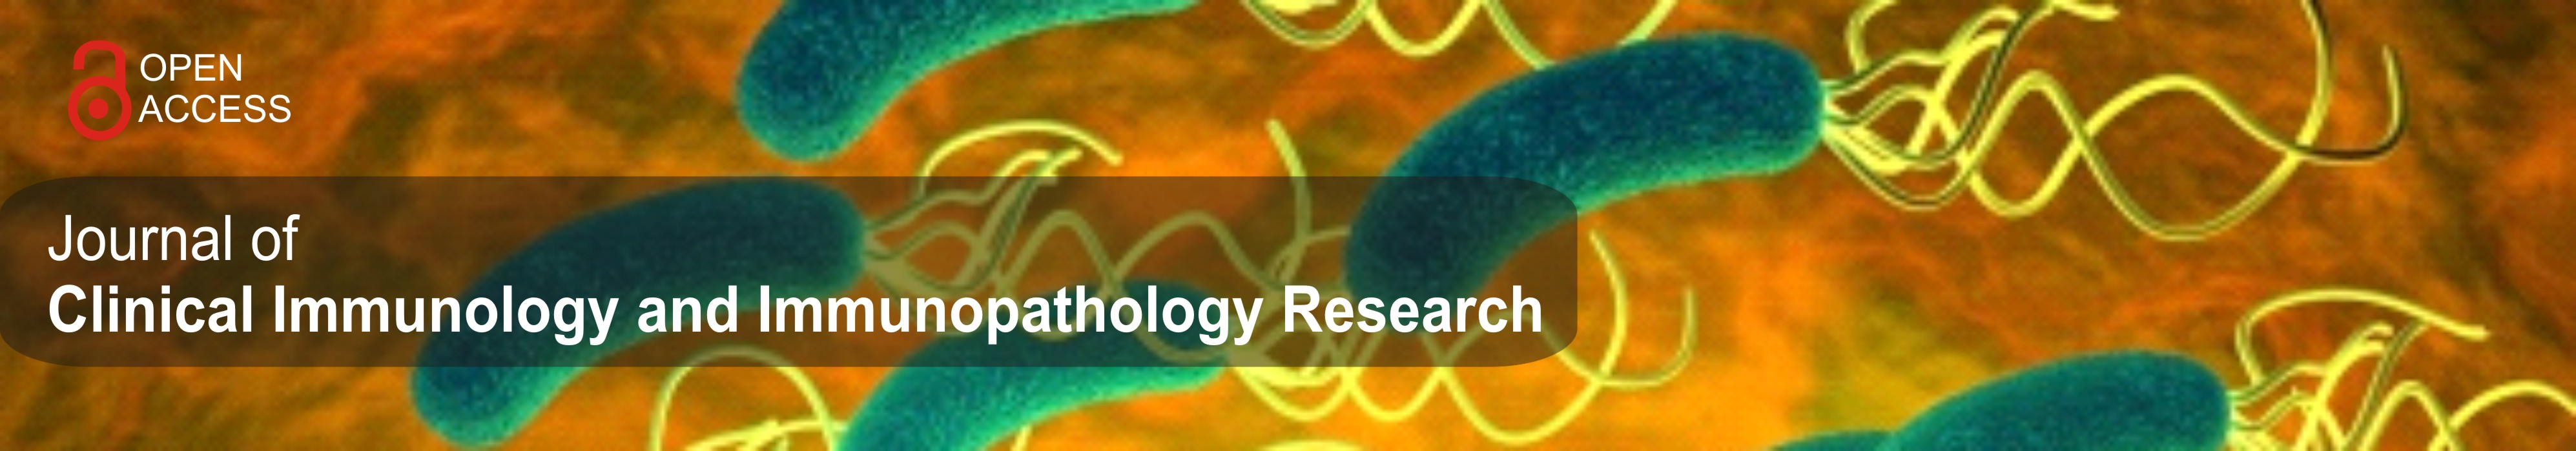 Journal of Clinical Immunology and Immunopathology Research